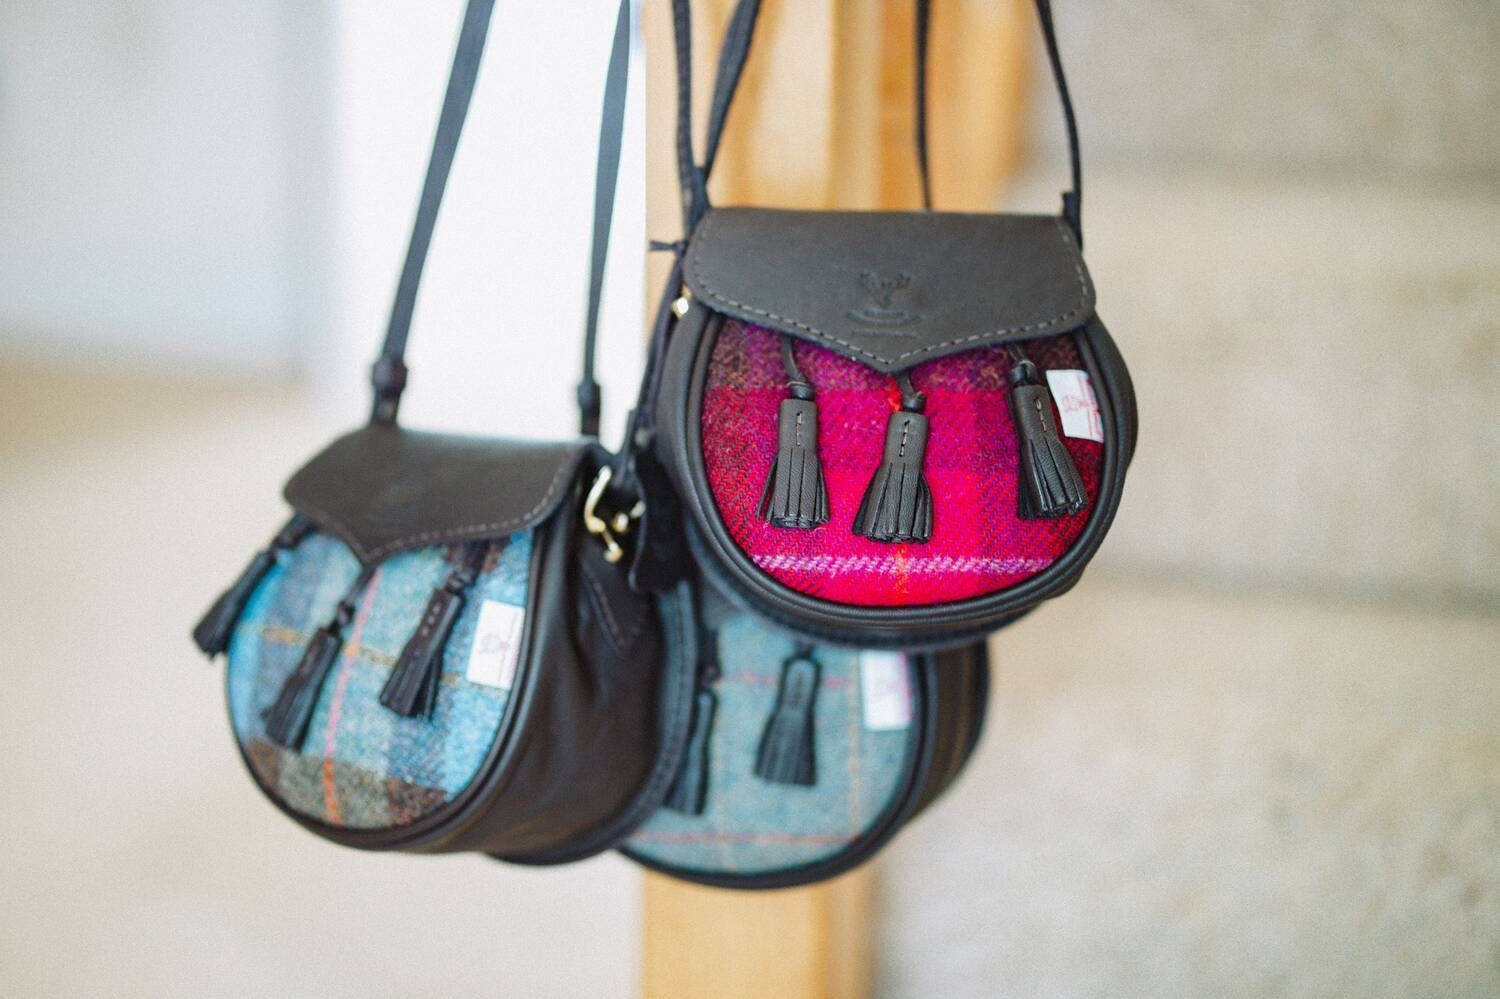 Three sporran-shaped handbags hang from a banister post by some carpeted stairs. The bags have a tartan body with leather tassels and strap.